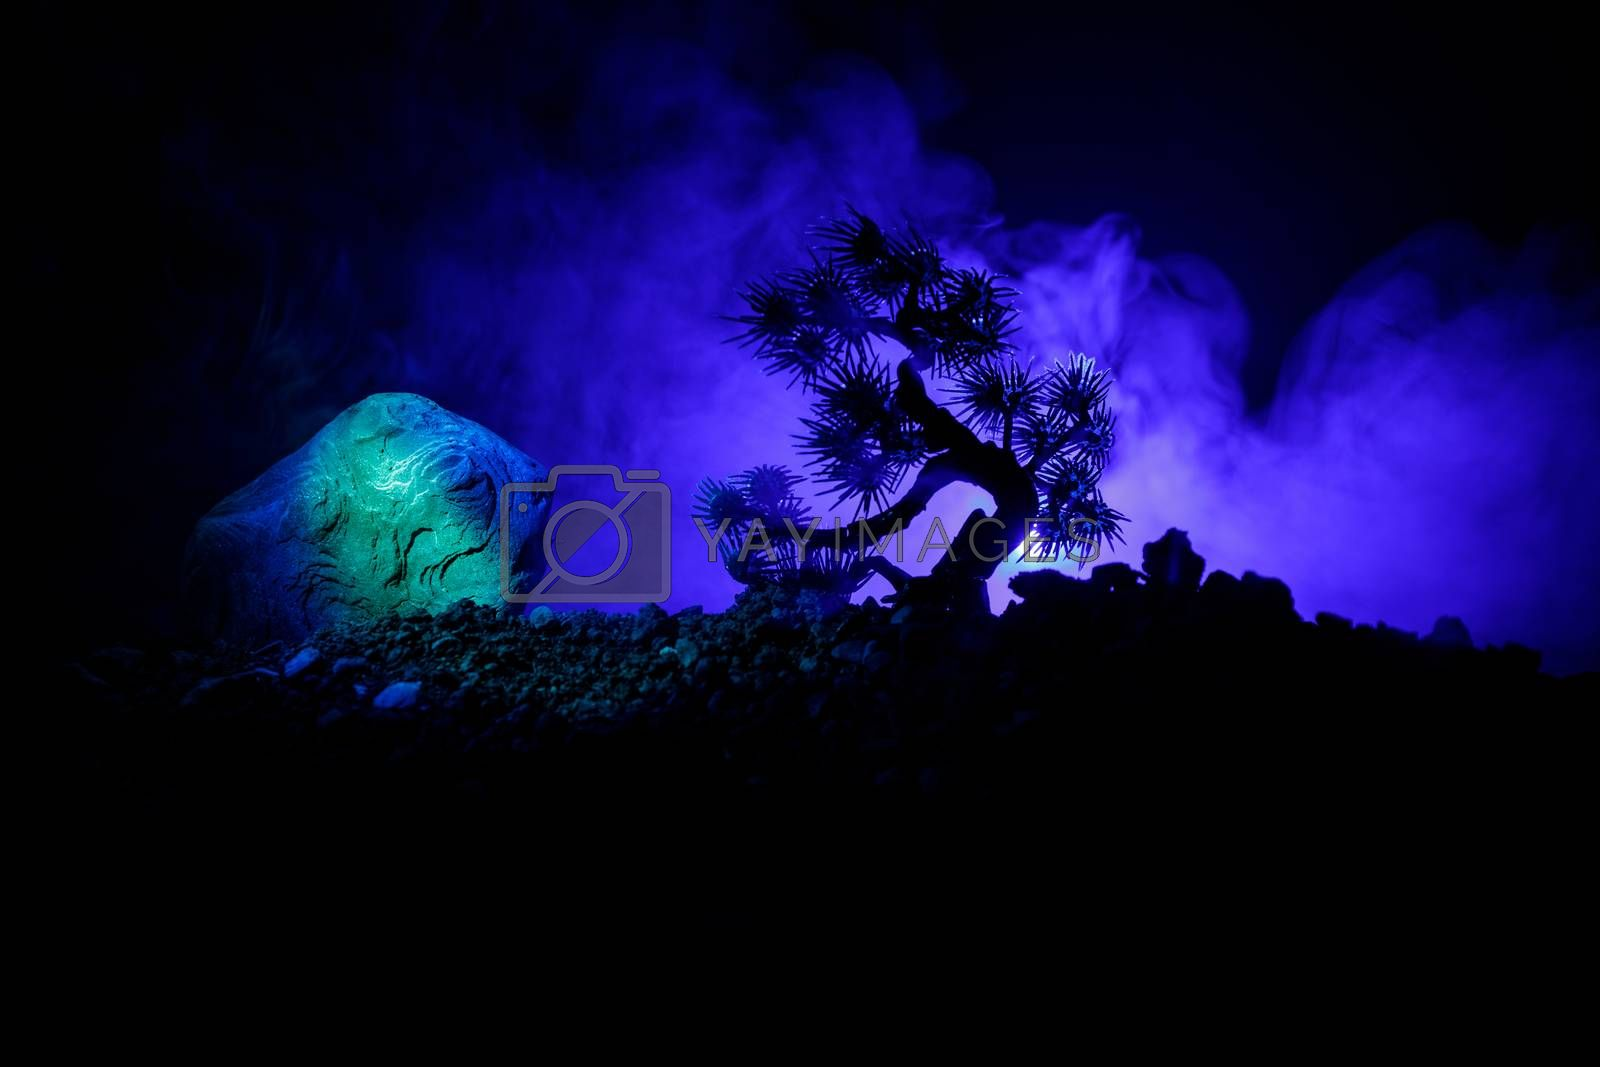 Silhouette Tree on full moon background. Full moon rising above japanese style tree against toned foggy sky. Decorated photo